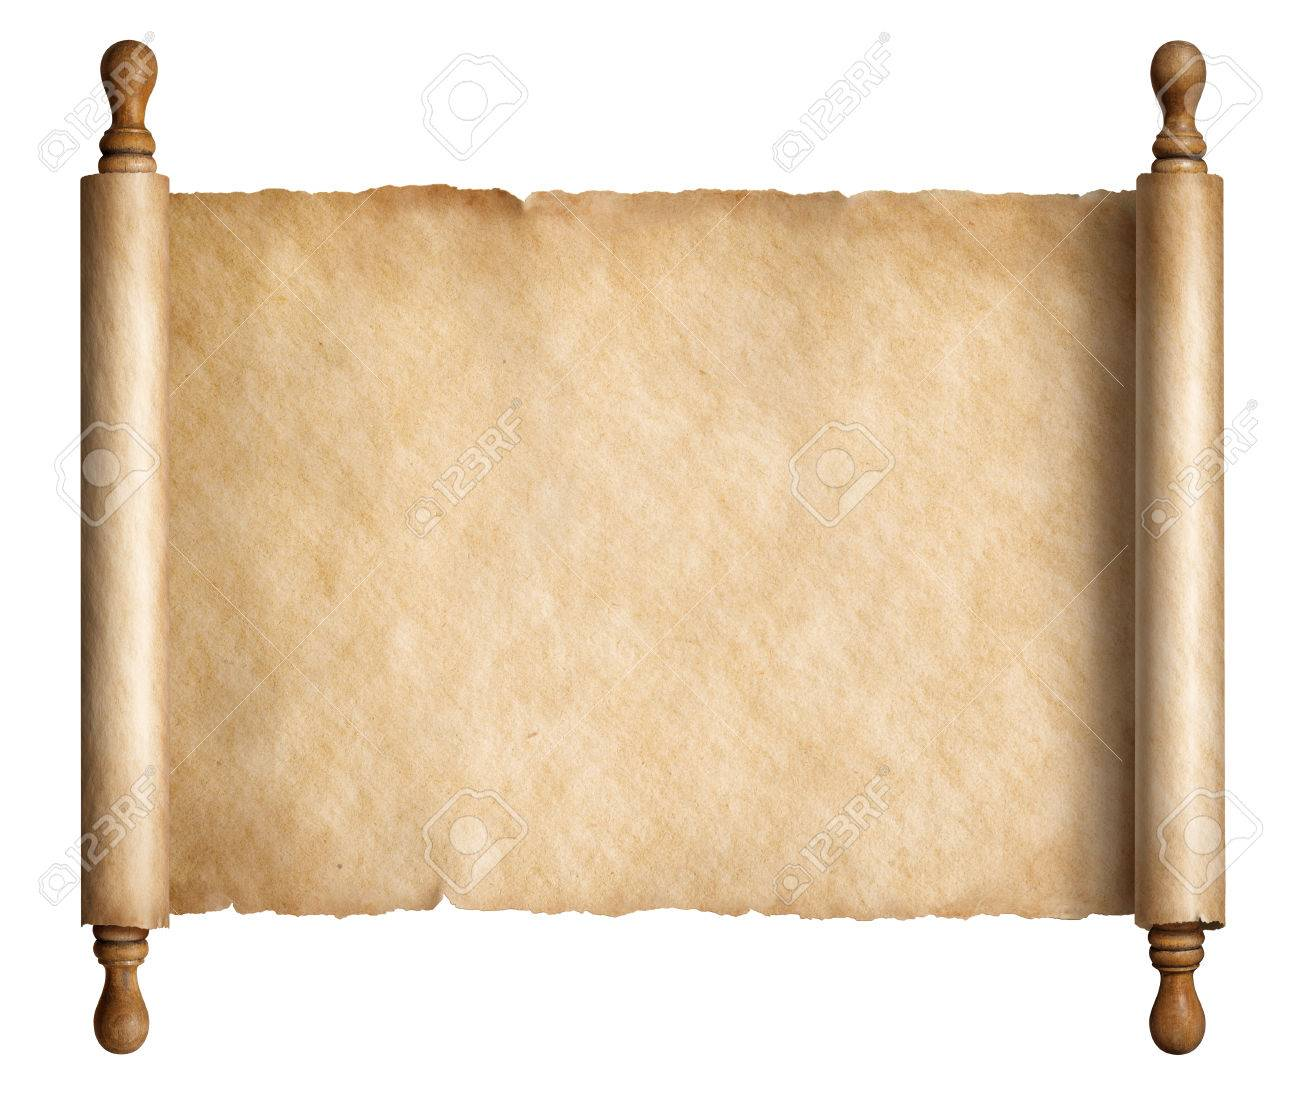 Old paper scroll or ancient parchment isolated 3d illustration - 86541173